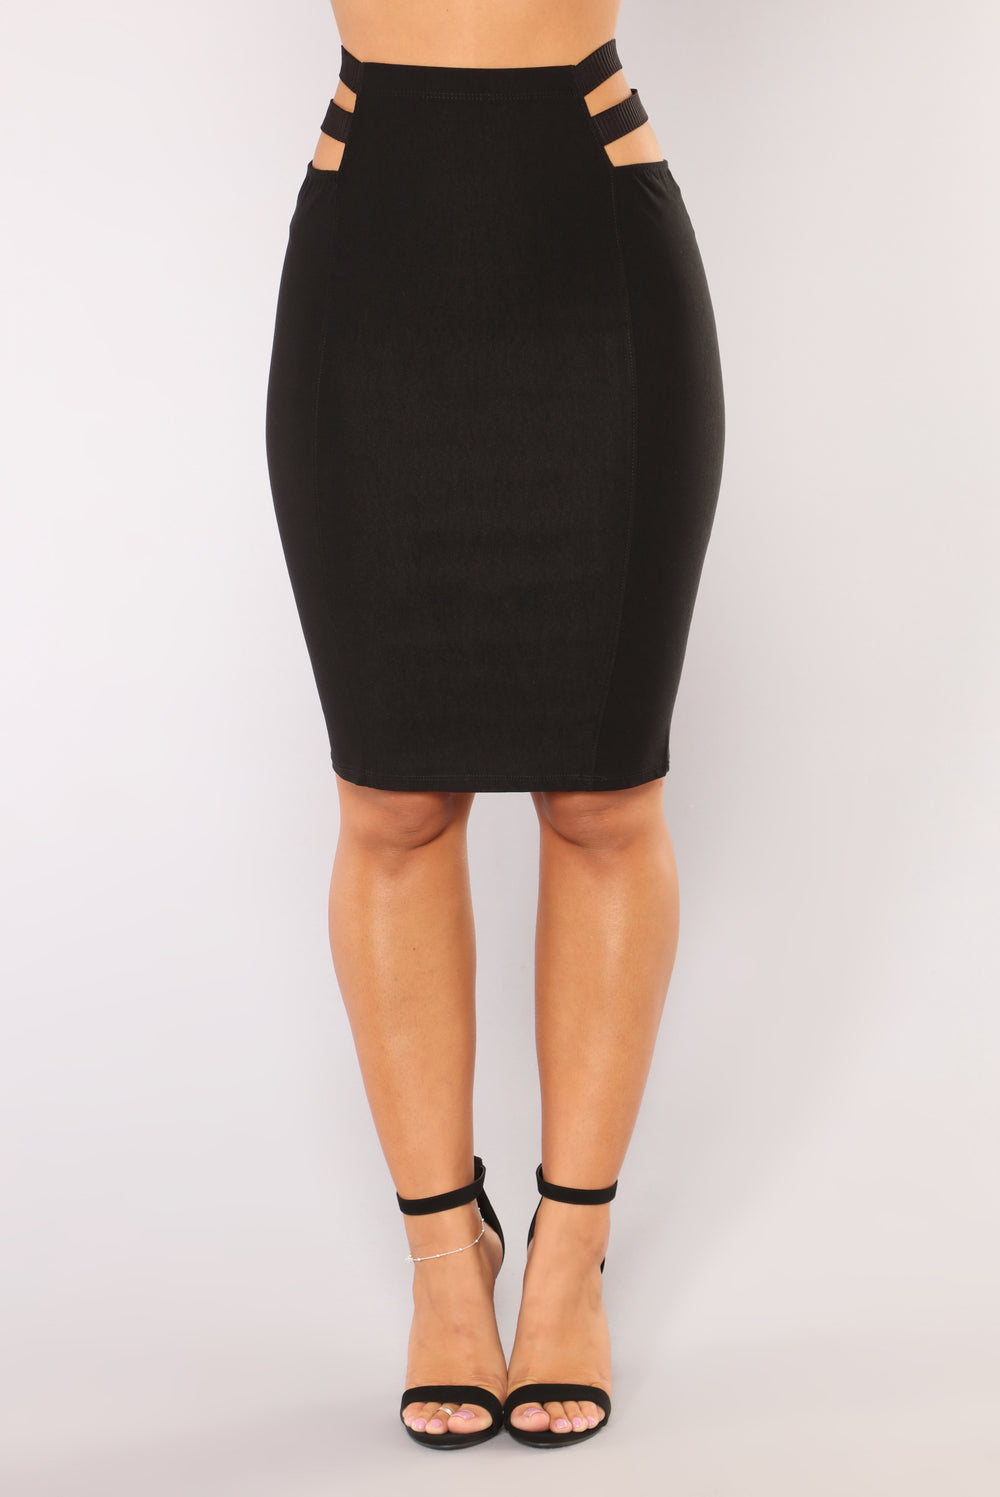 Cut It Out Skirt - Black